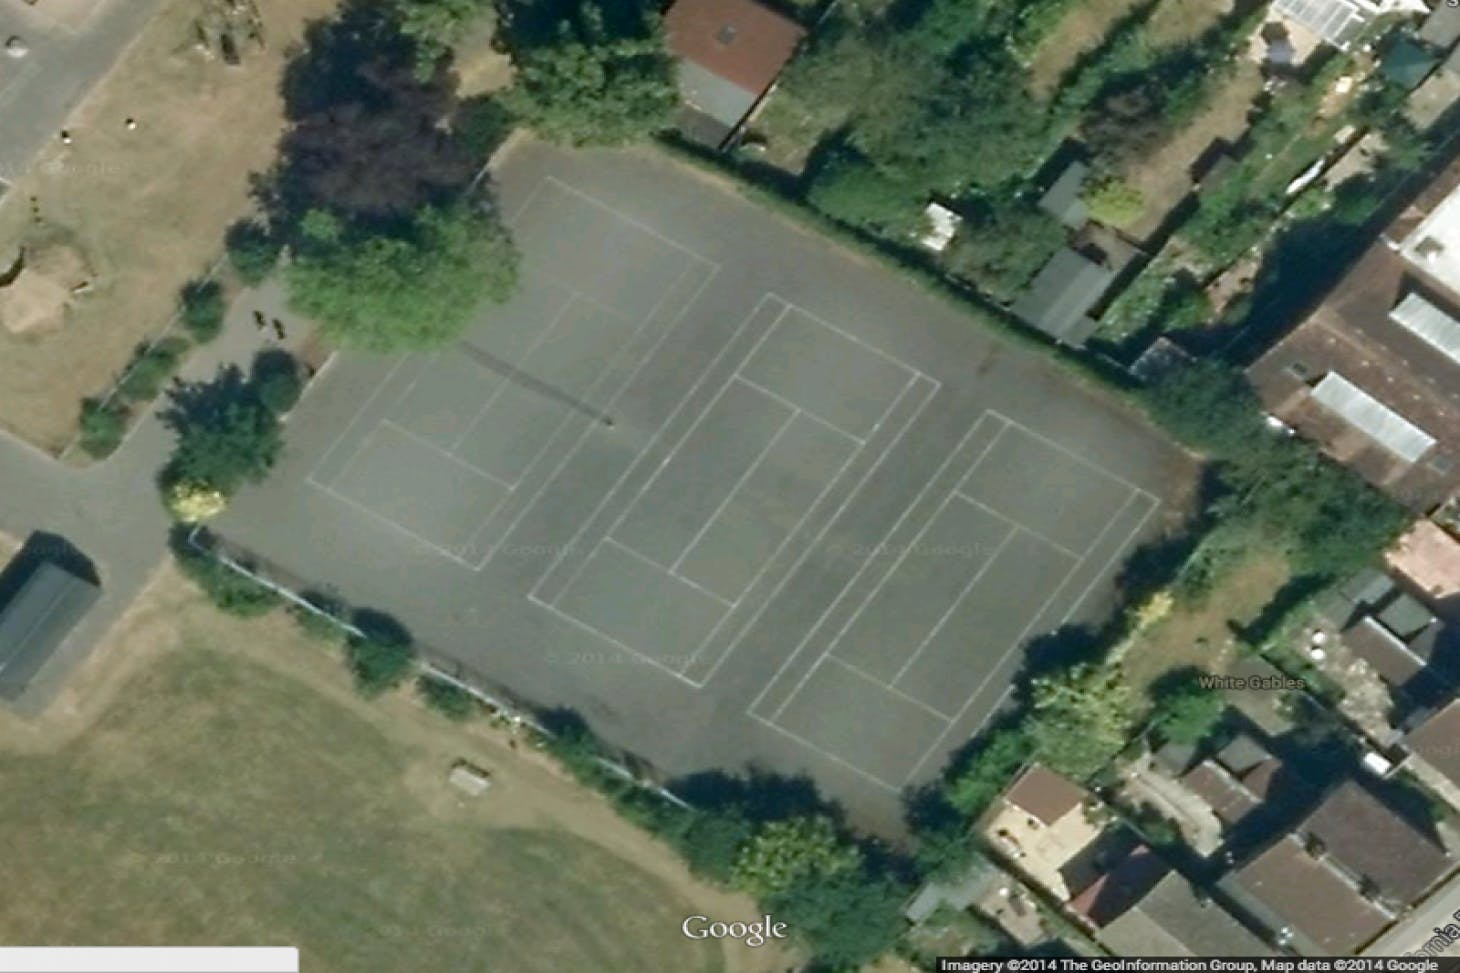 Kingston Road Recreation Ground Outdoor | Hard (macadam) tennis court